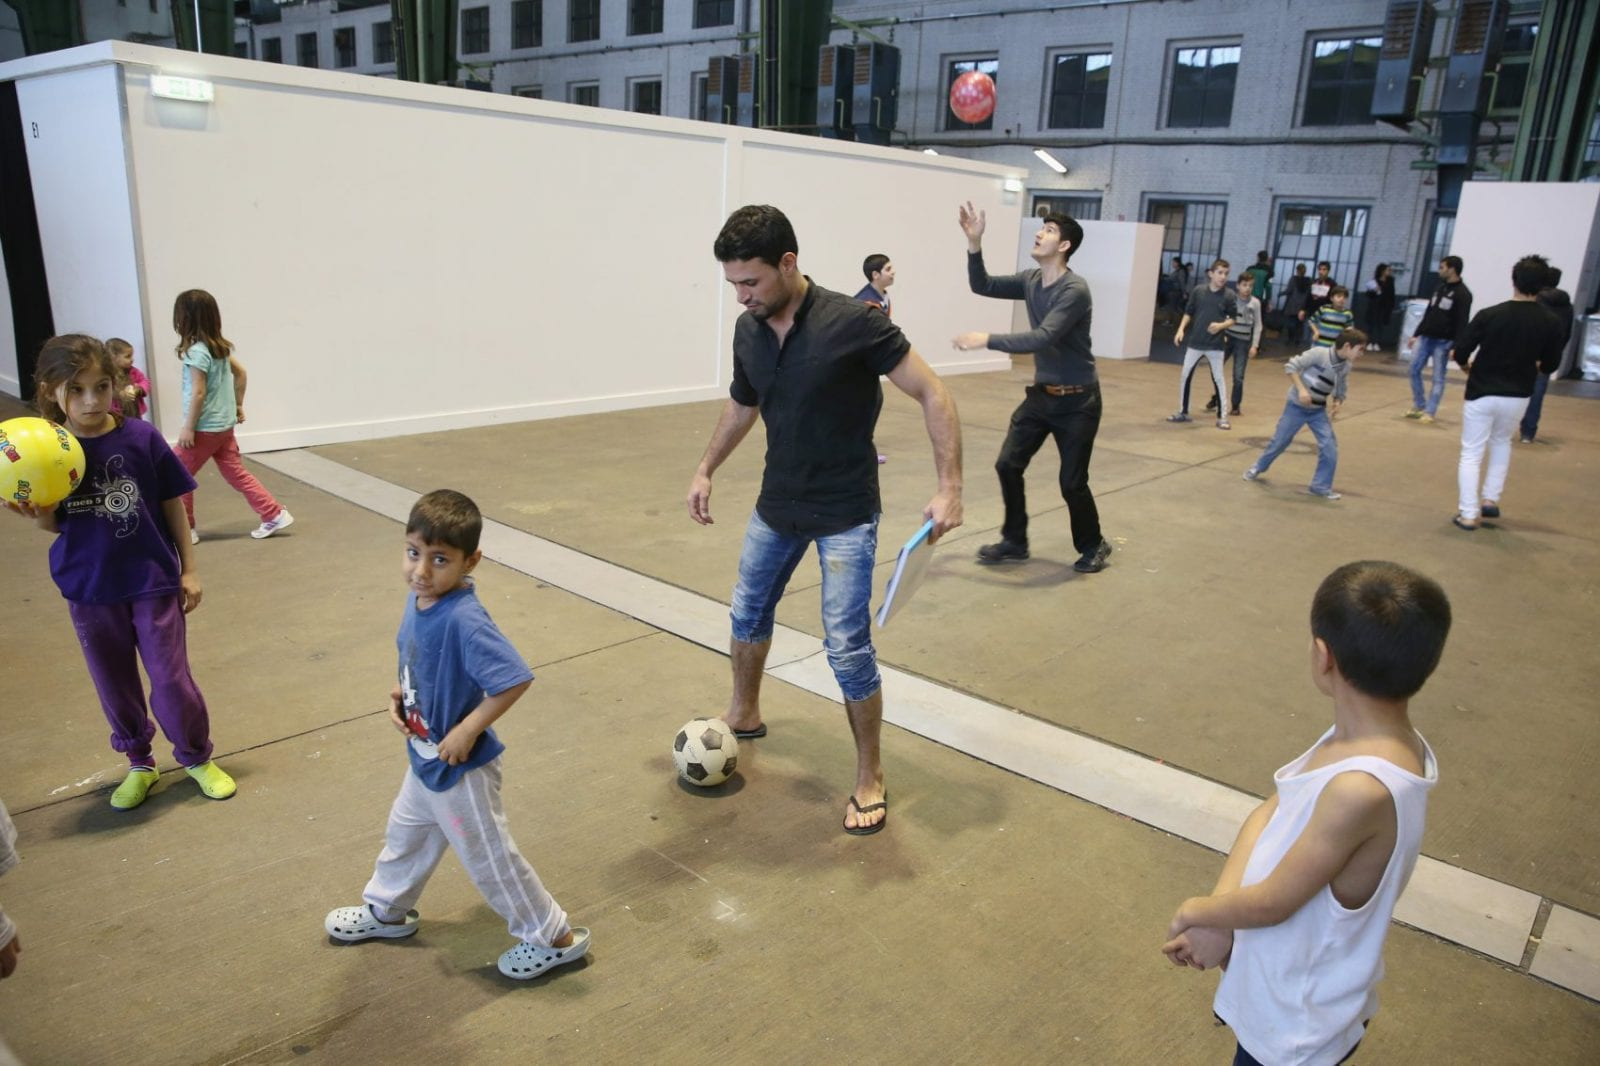 Refugees and migrants seeking asylum in Germany play with balls in Hangar 7 at former Tempelhof Airport (Photo: Getty)